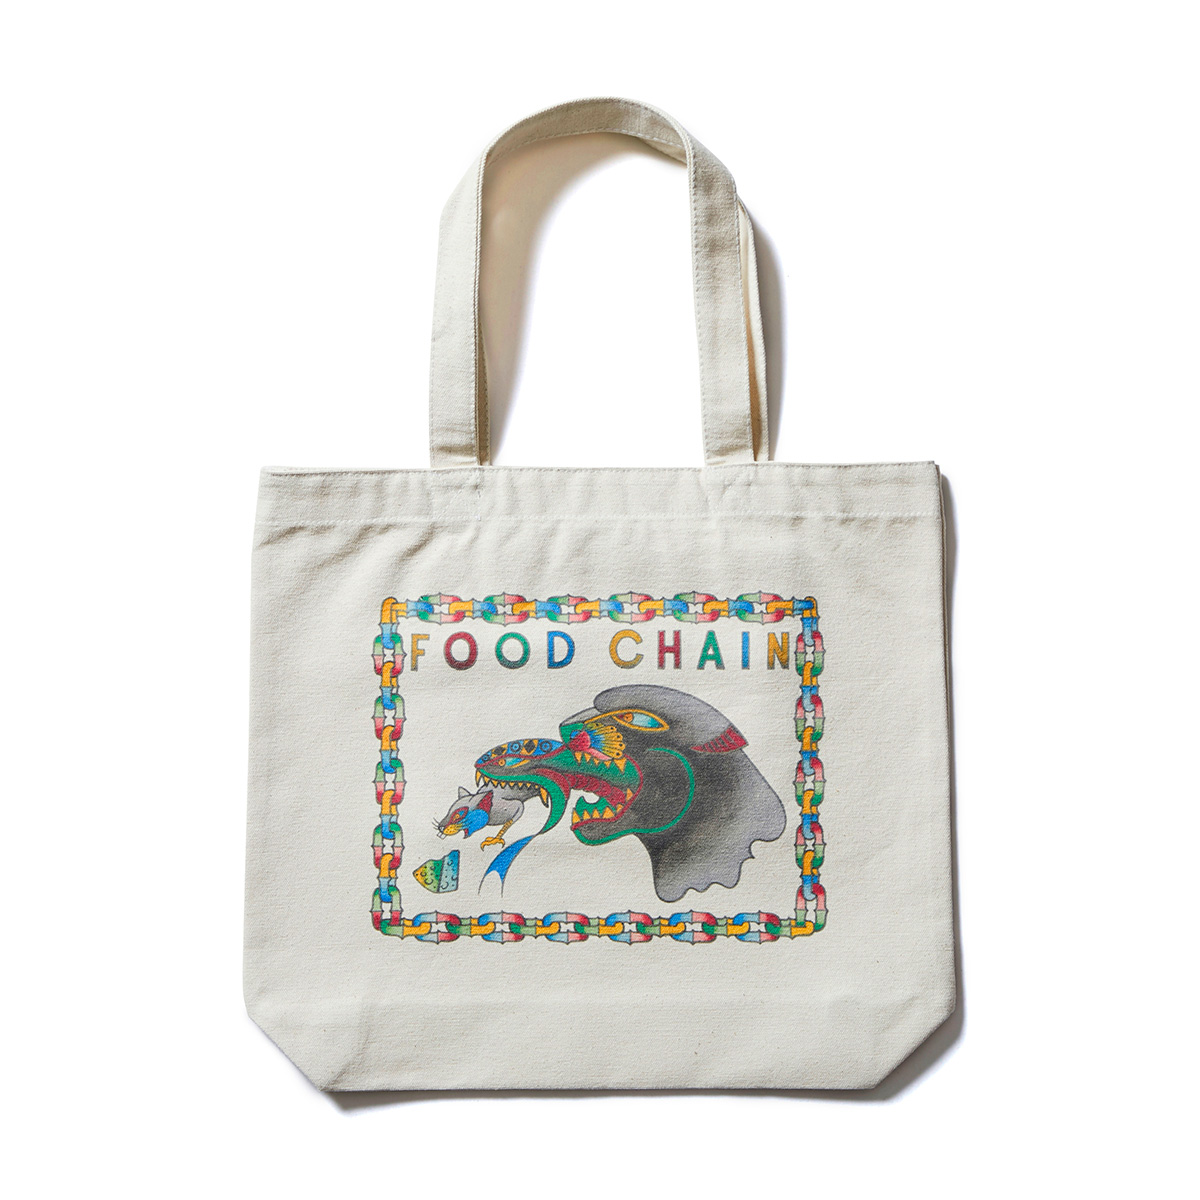 FOOD CHAIN TOTE